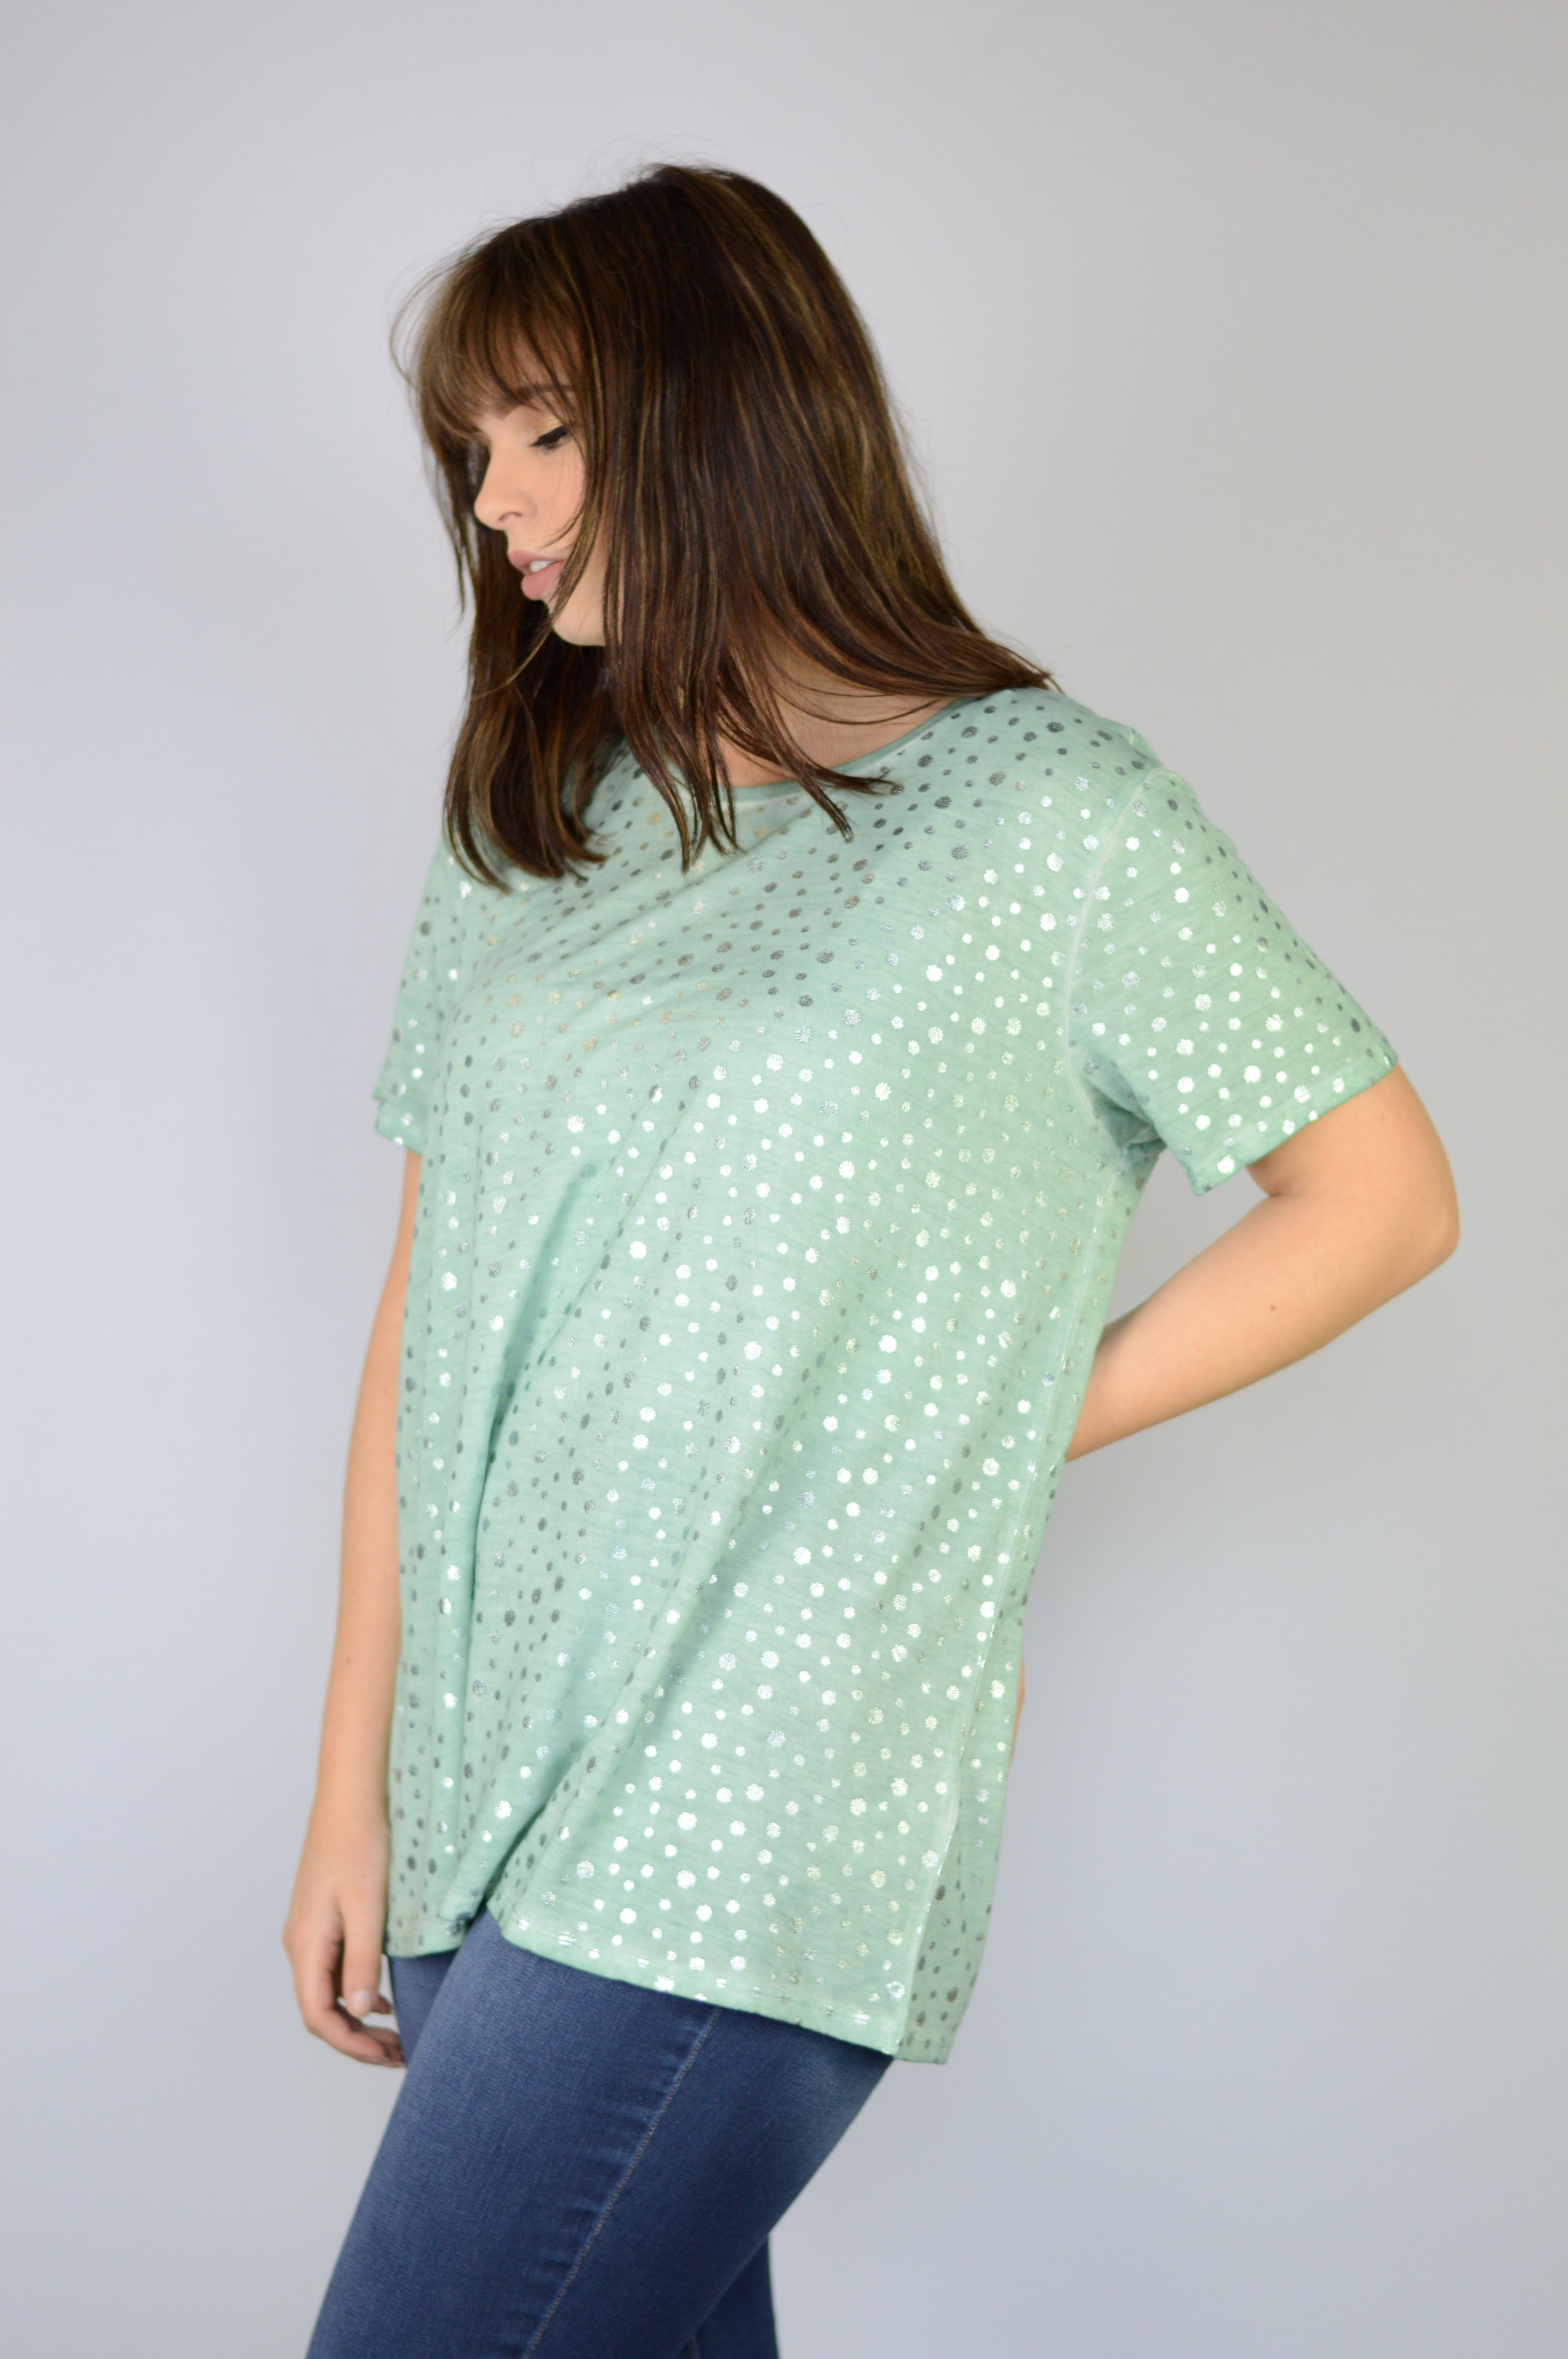 Mint Teal Green Short Sleeve T-Shirt Top with little silver shiny metallic seashells printed seattle washington based women's clothing brand dantelle apparel